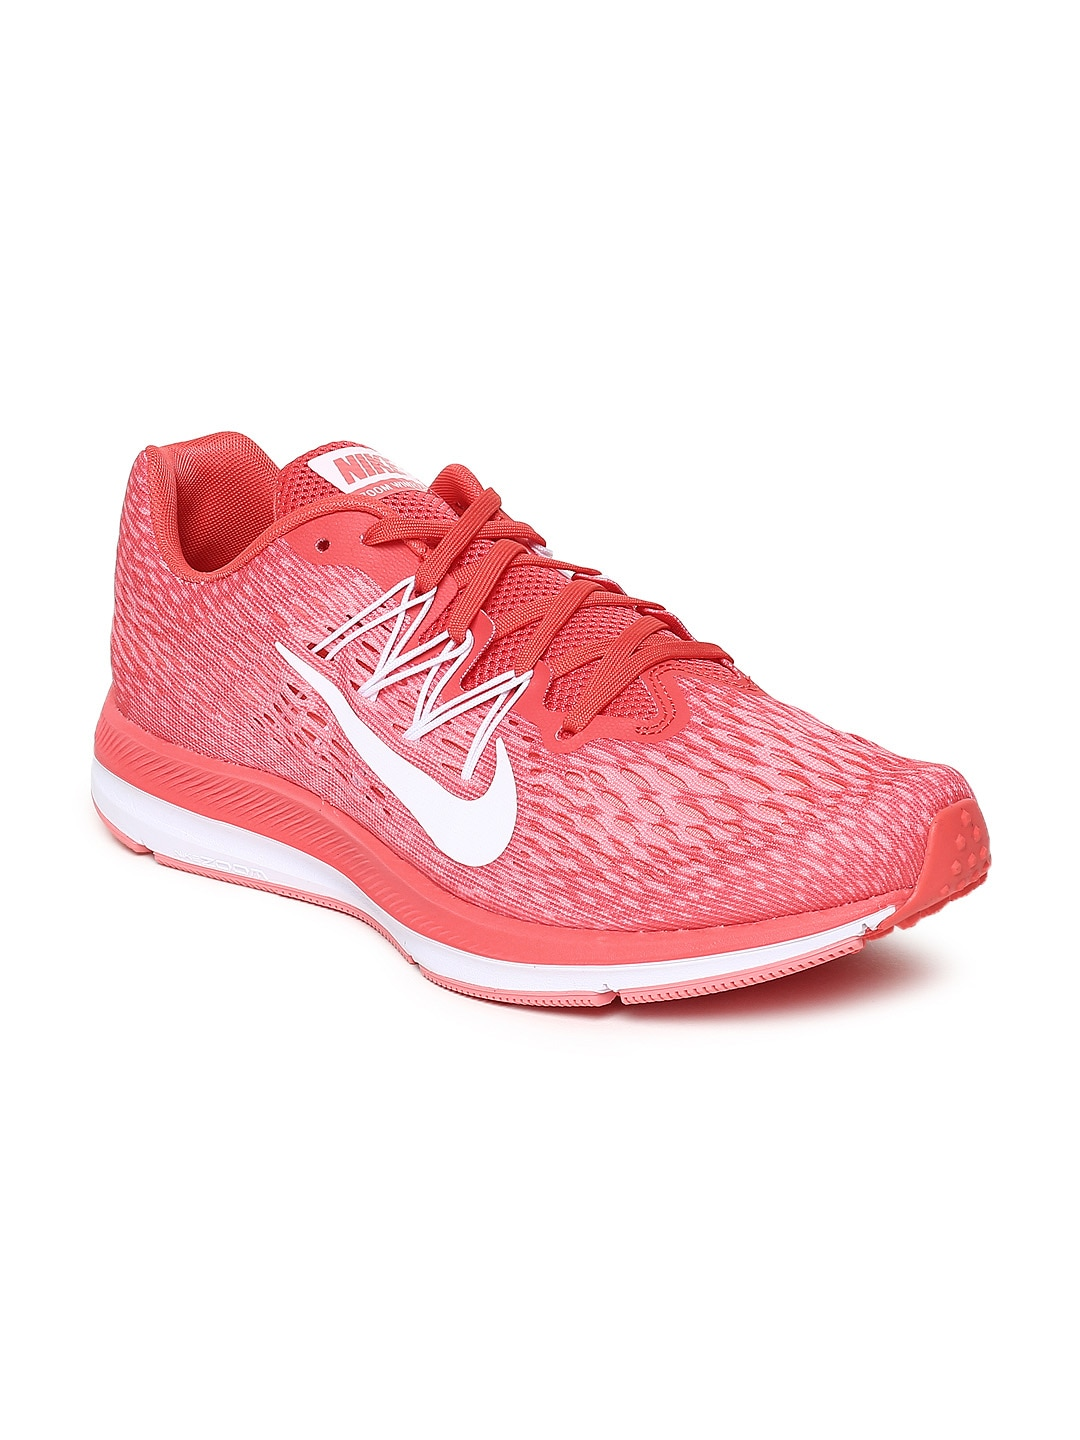 10c339fb8543 Nike Zoom Sports Shoes - Buy Nike Zoom Sports Shoes online in India